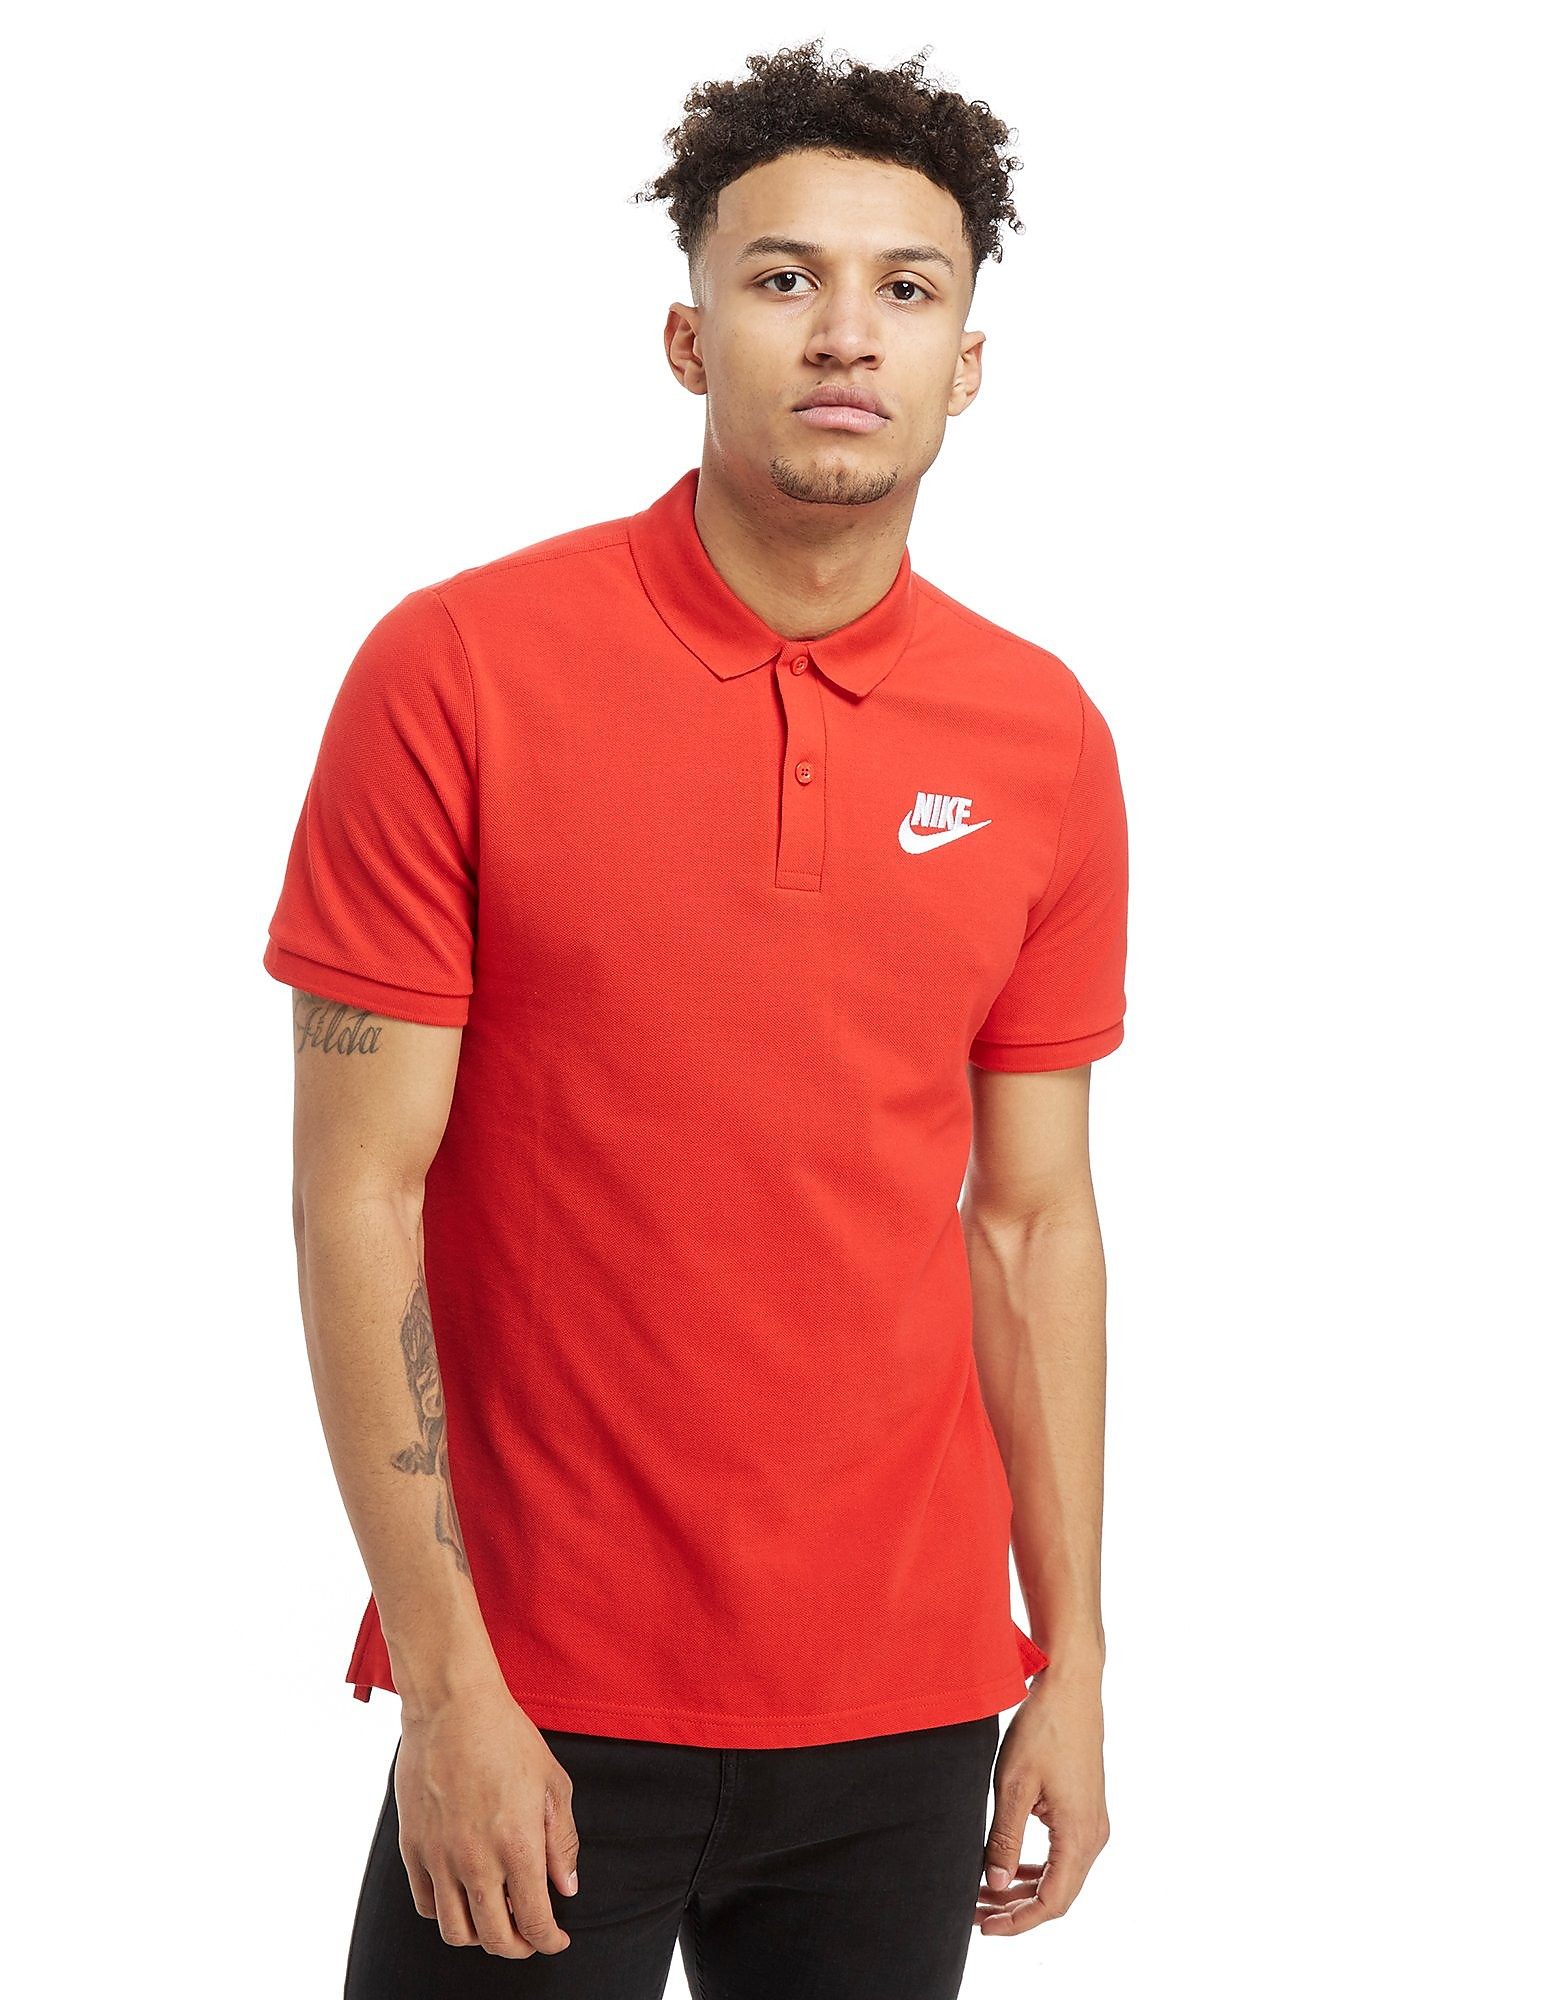 Nike Foundation Polo Pique Shirt